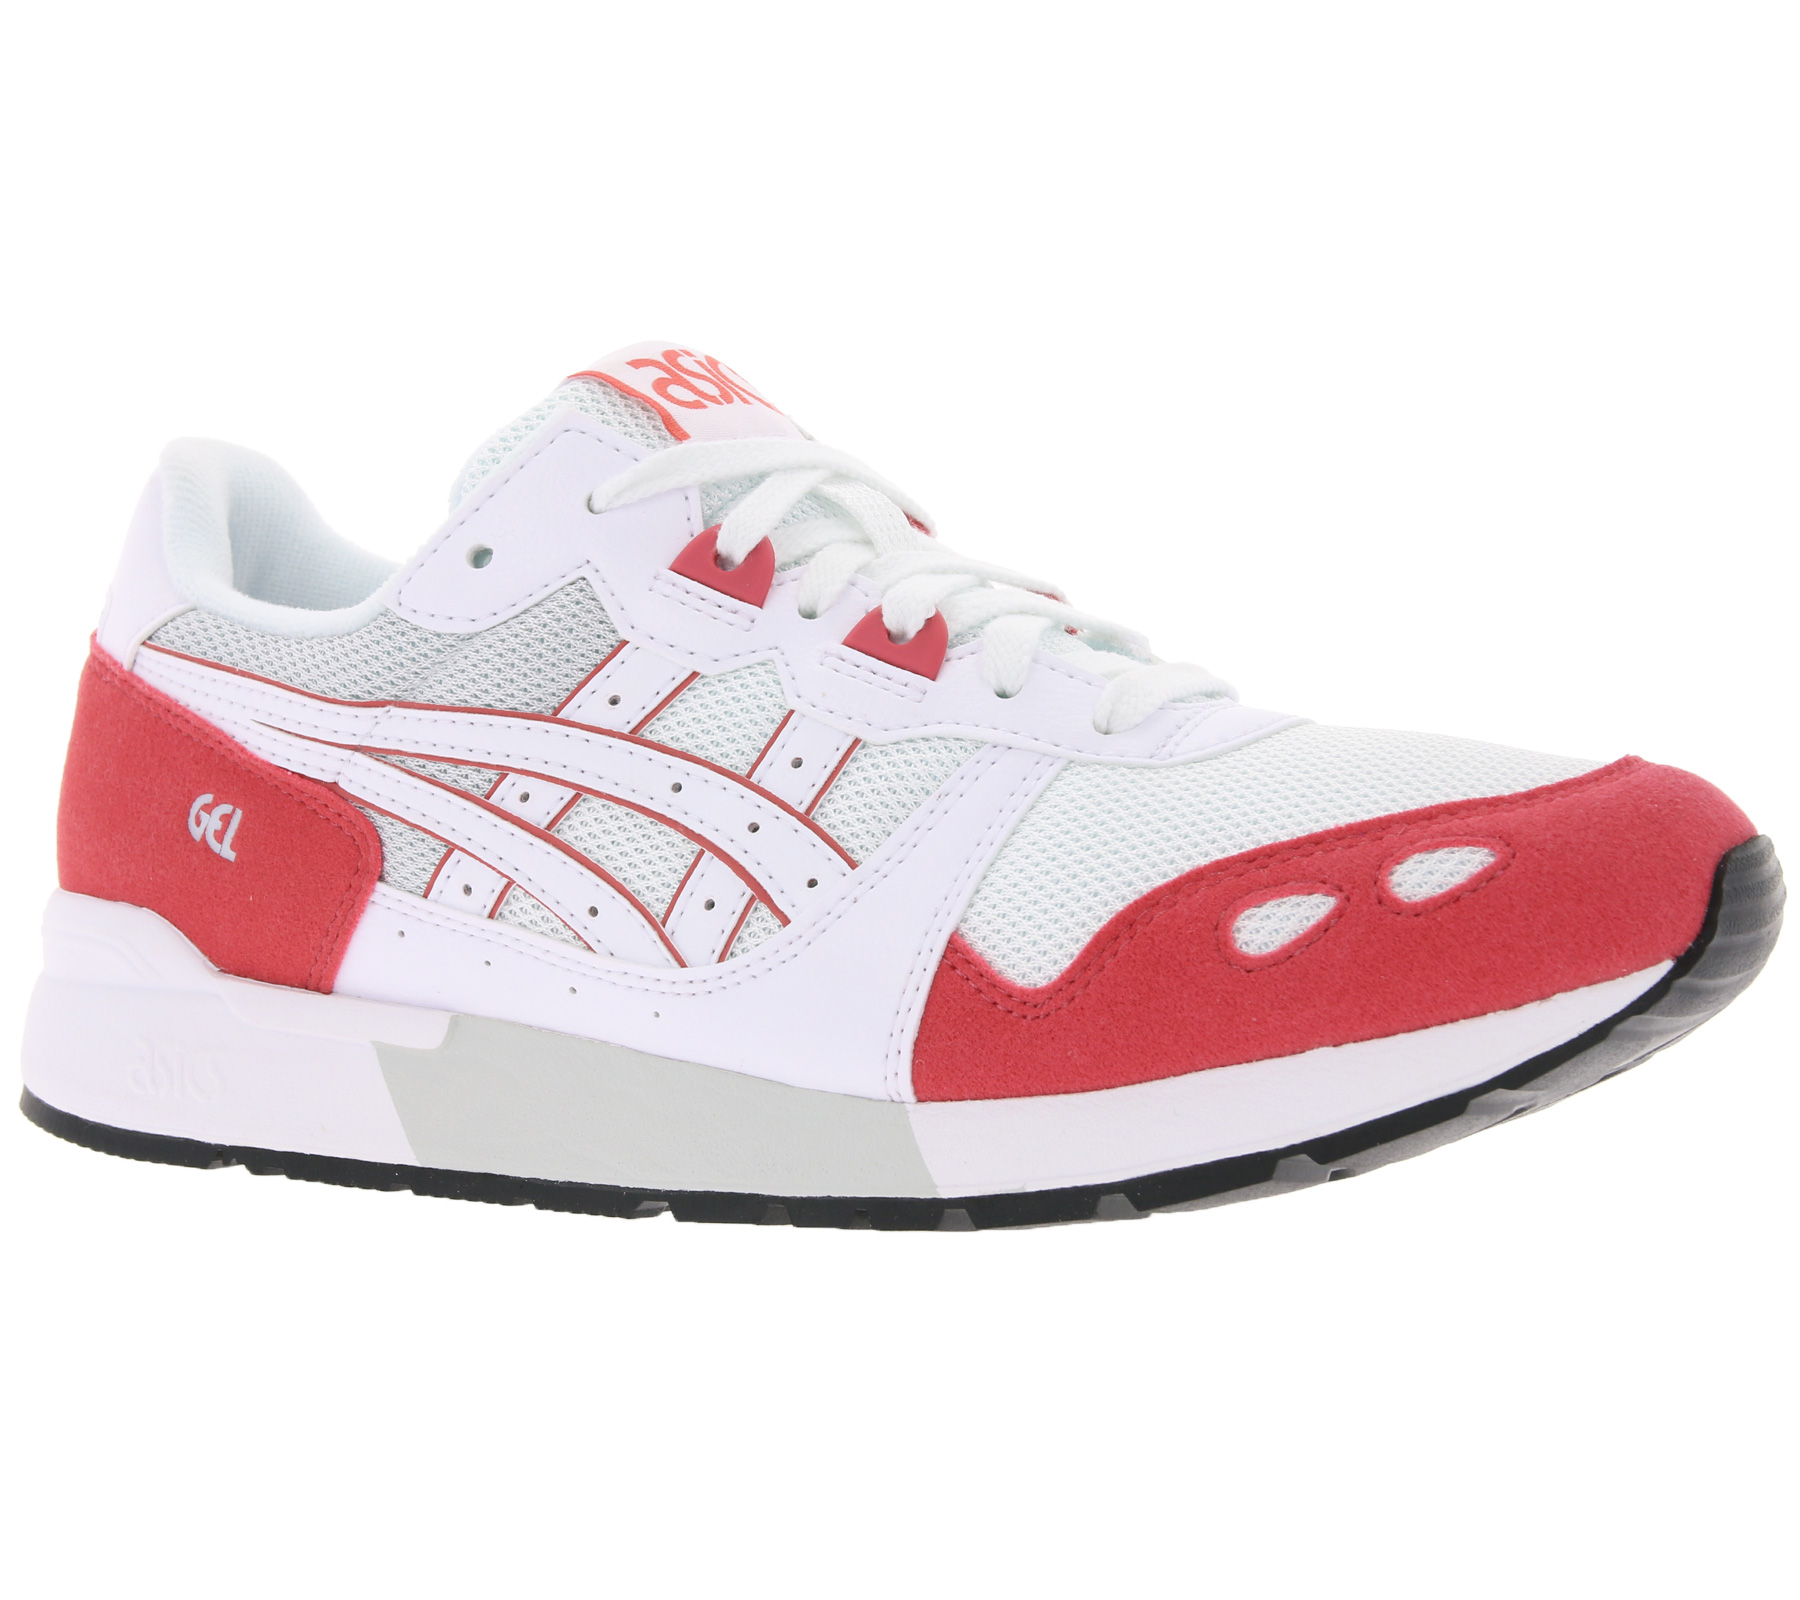 sale retailer c23bc 7eee4 asics sneaker cool shoes Gel-Lyte white / red | Outlet46.de - B2B